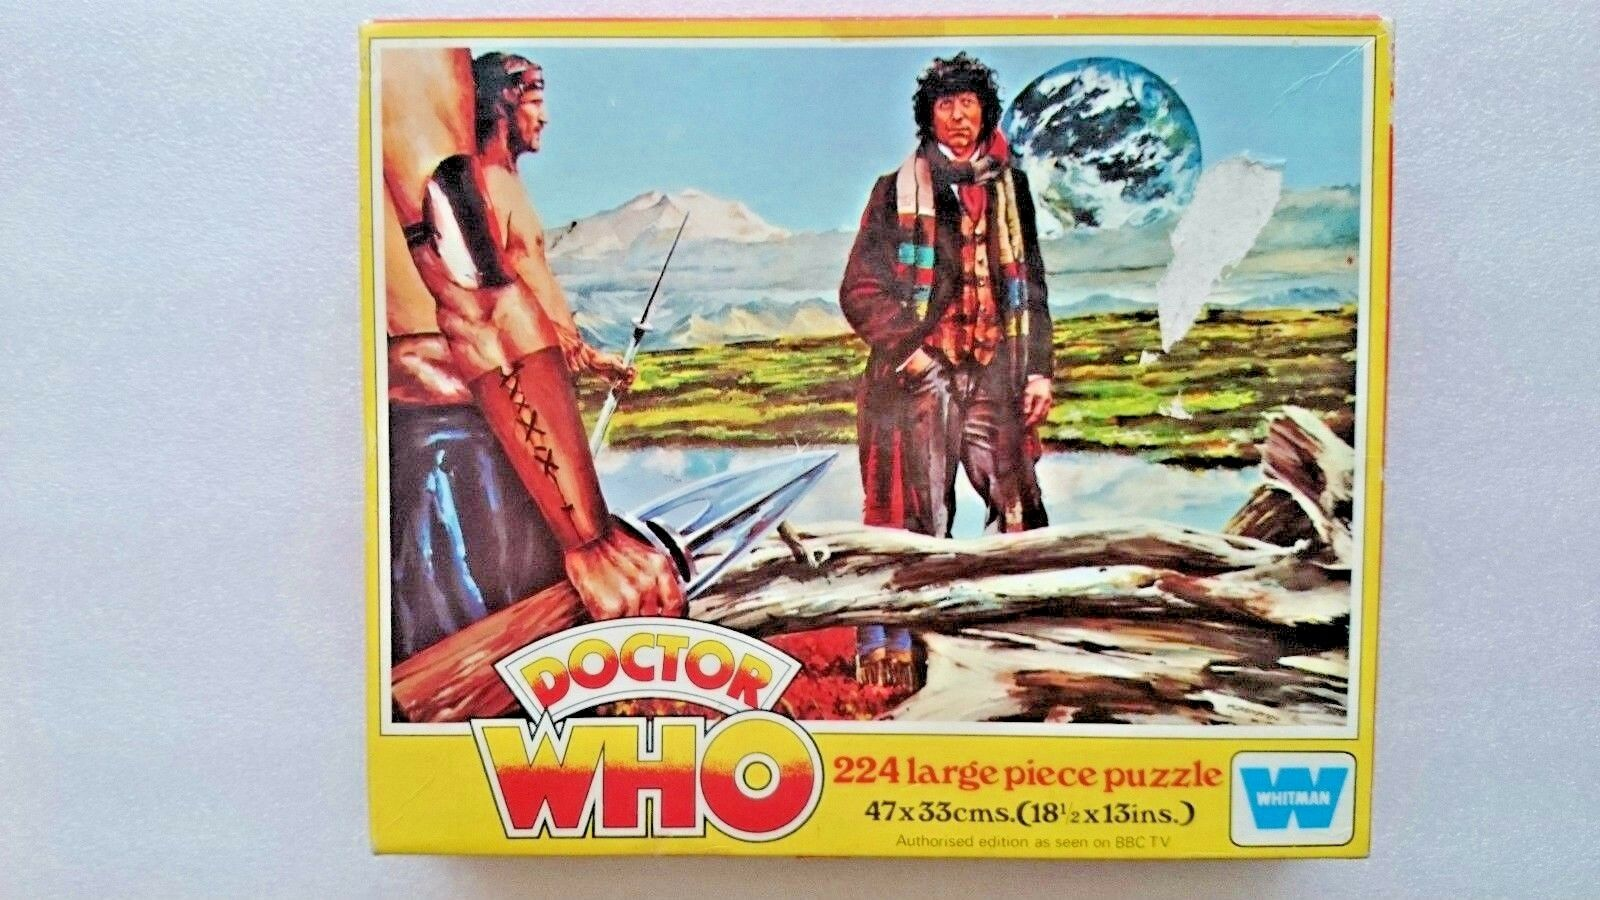 Vintage Doctor Who 224 Piece Jigsaw by Whitman 1977  (7836)